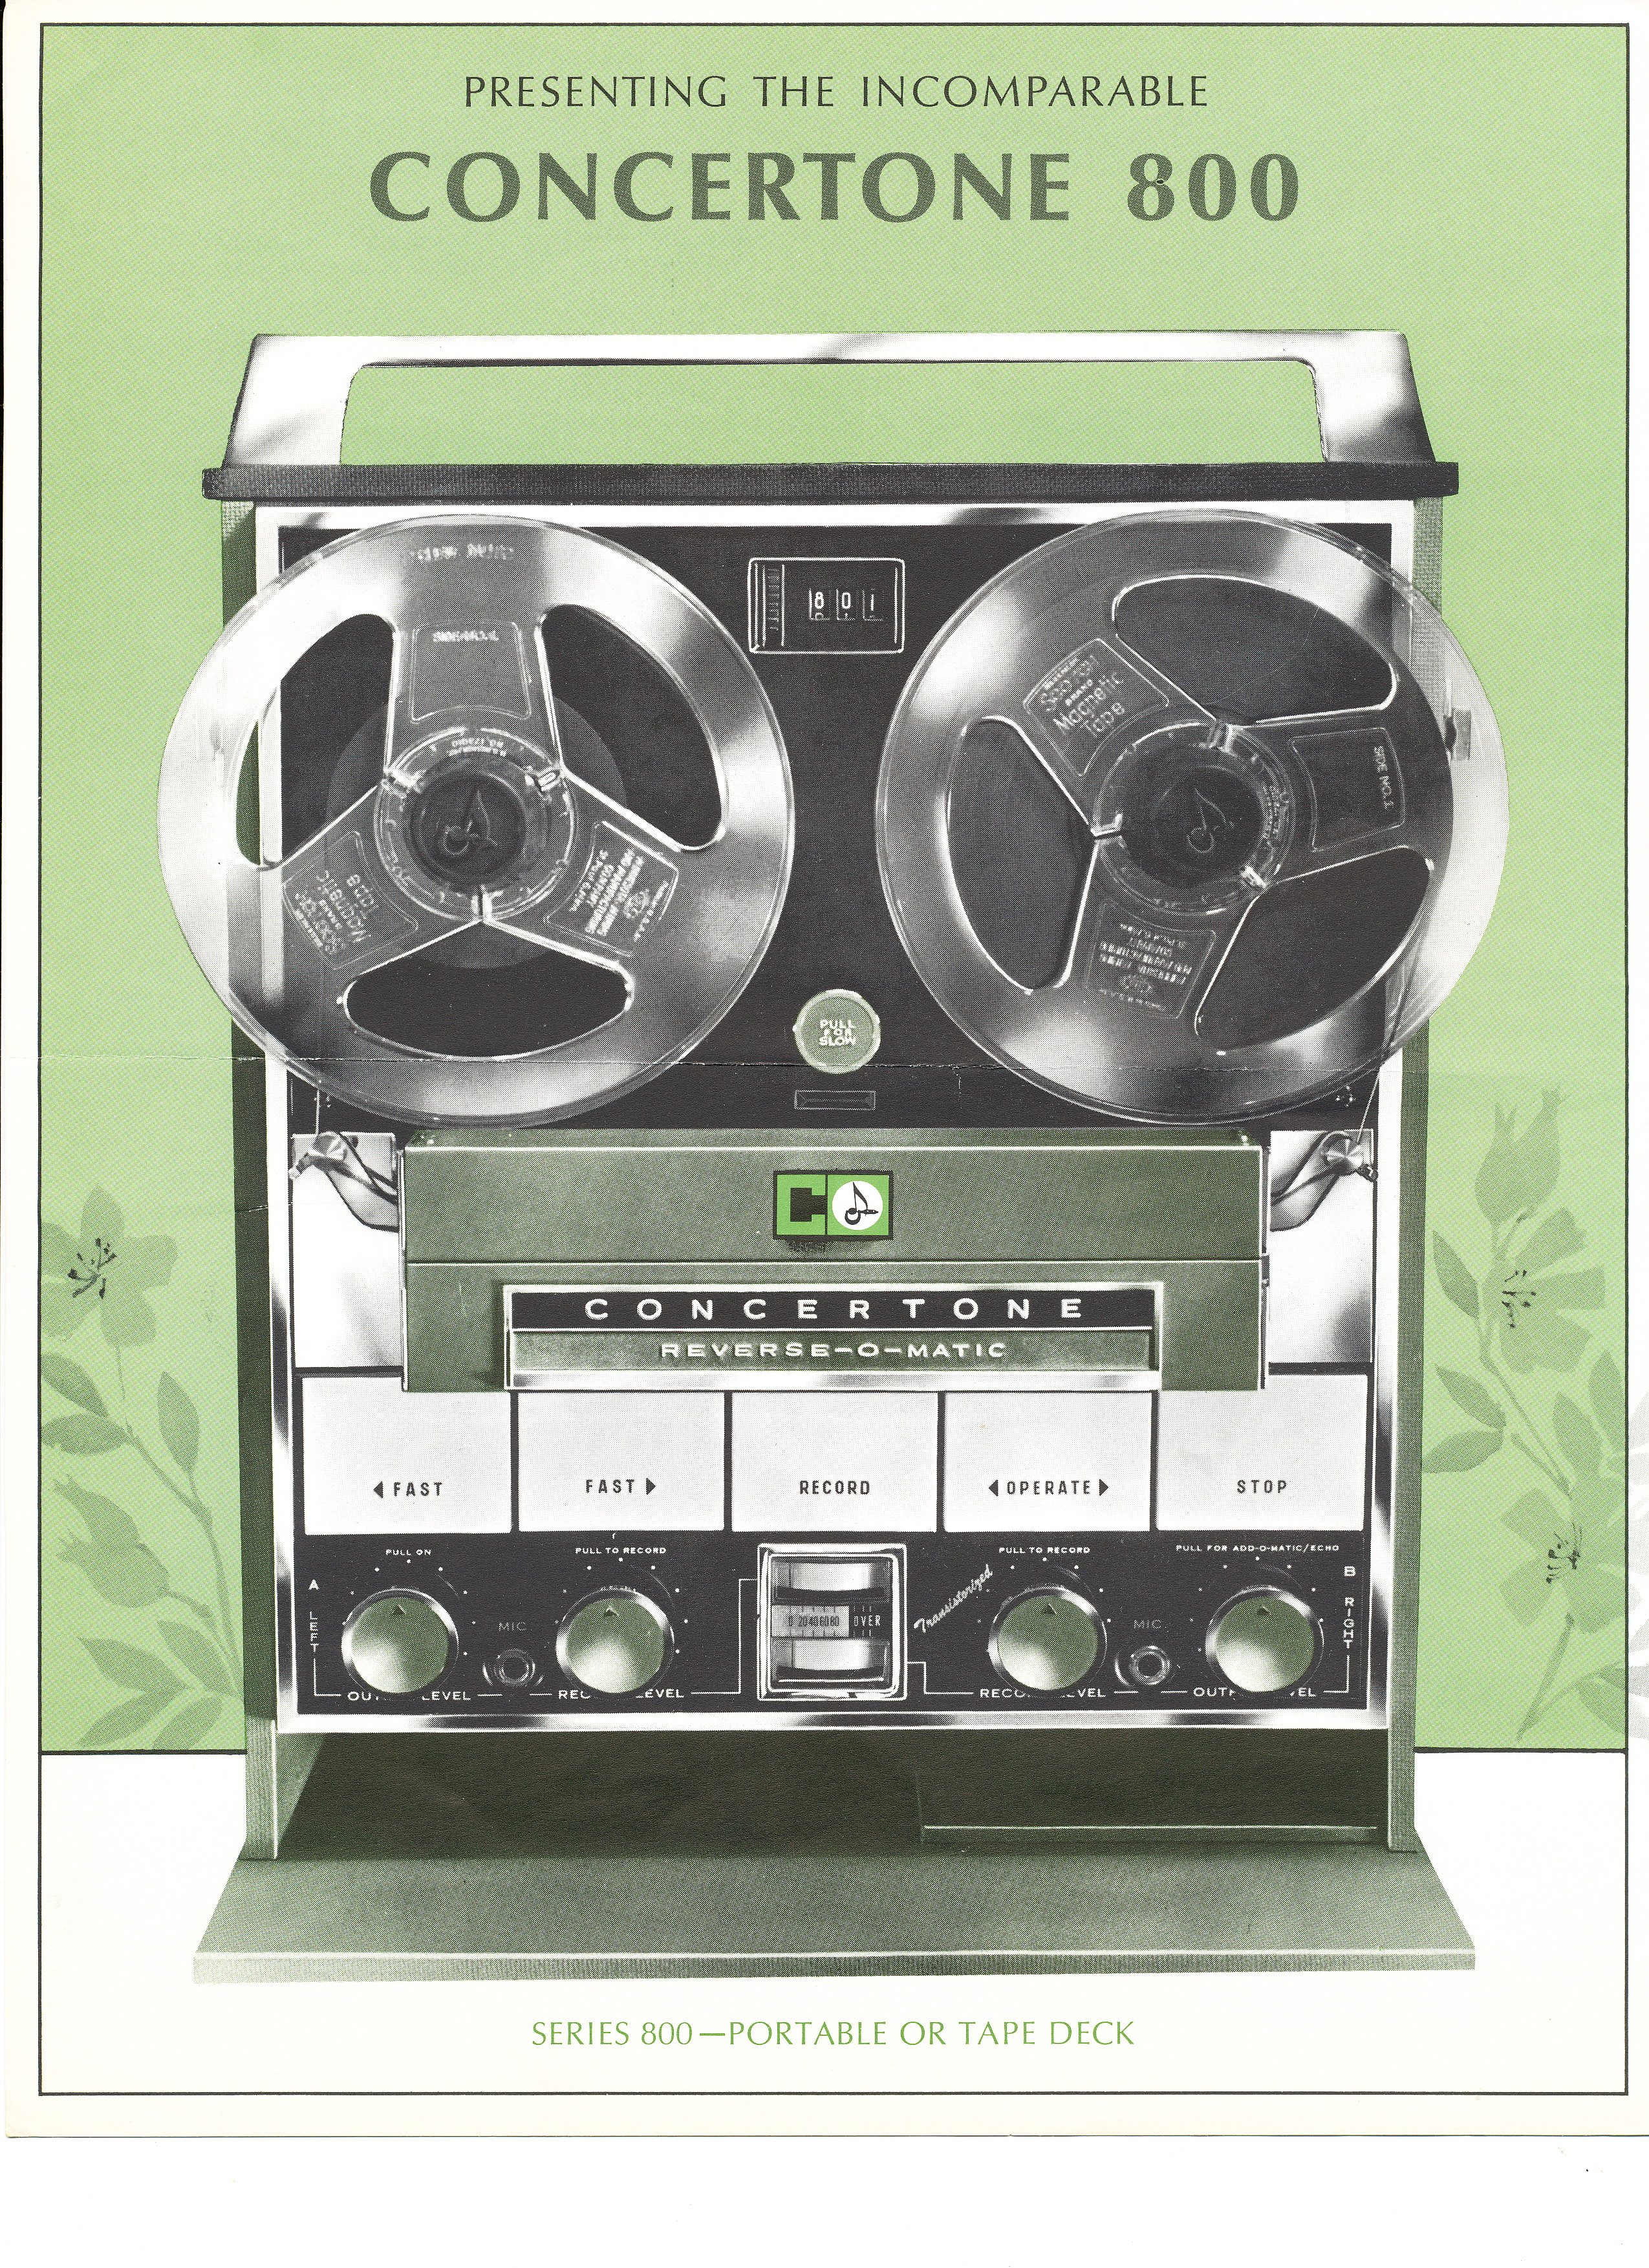 1964 ad for the Concertone (Teac) 800 open reel tape recorder in the Museum of magnetic Sound Recording